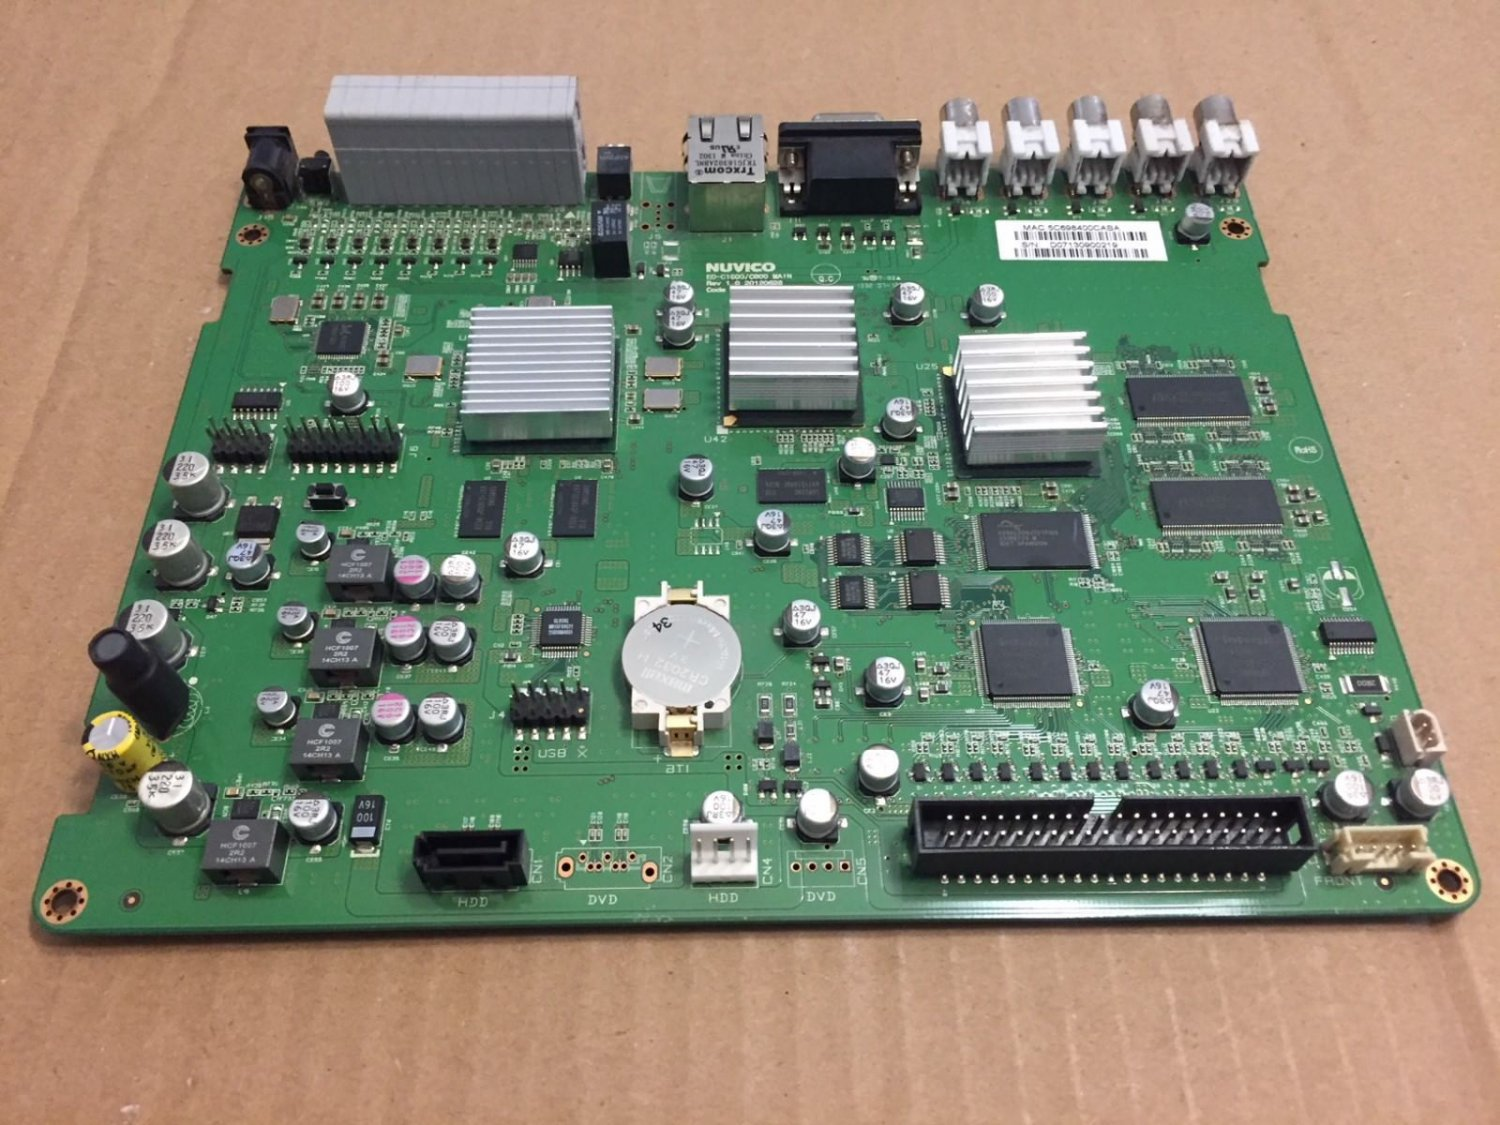 MAIN PCB ED-C1600/C800 FROM Nuvico ED-C1600 16 channel DVR